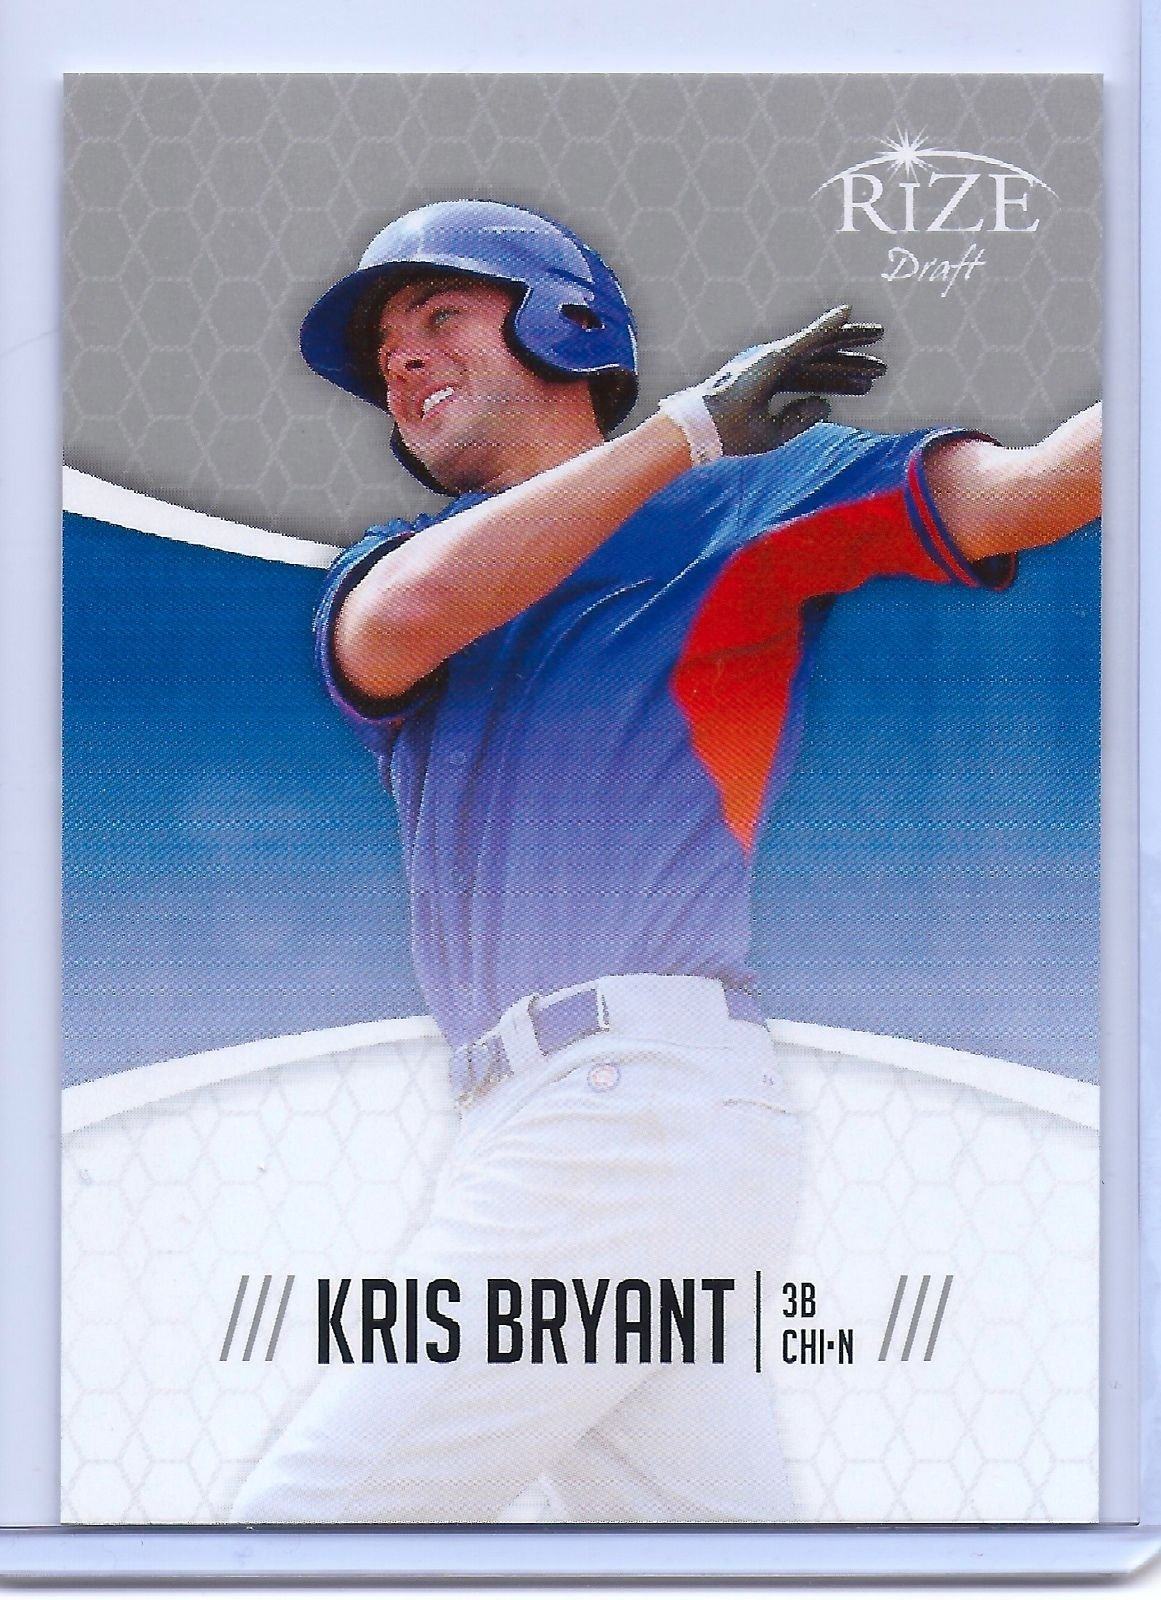 "KRIS BRYANT 2014 LEAF ""RIZE"" DRAFT CHICAGO CUBS ROOKIE CARD! 2015 ROOKIE OF THE YEAR!"